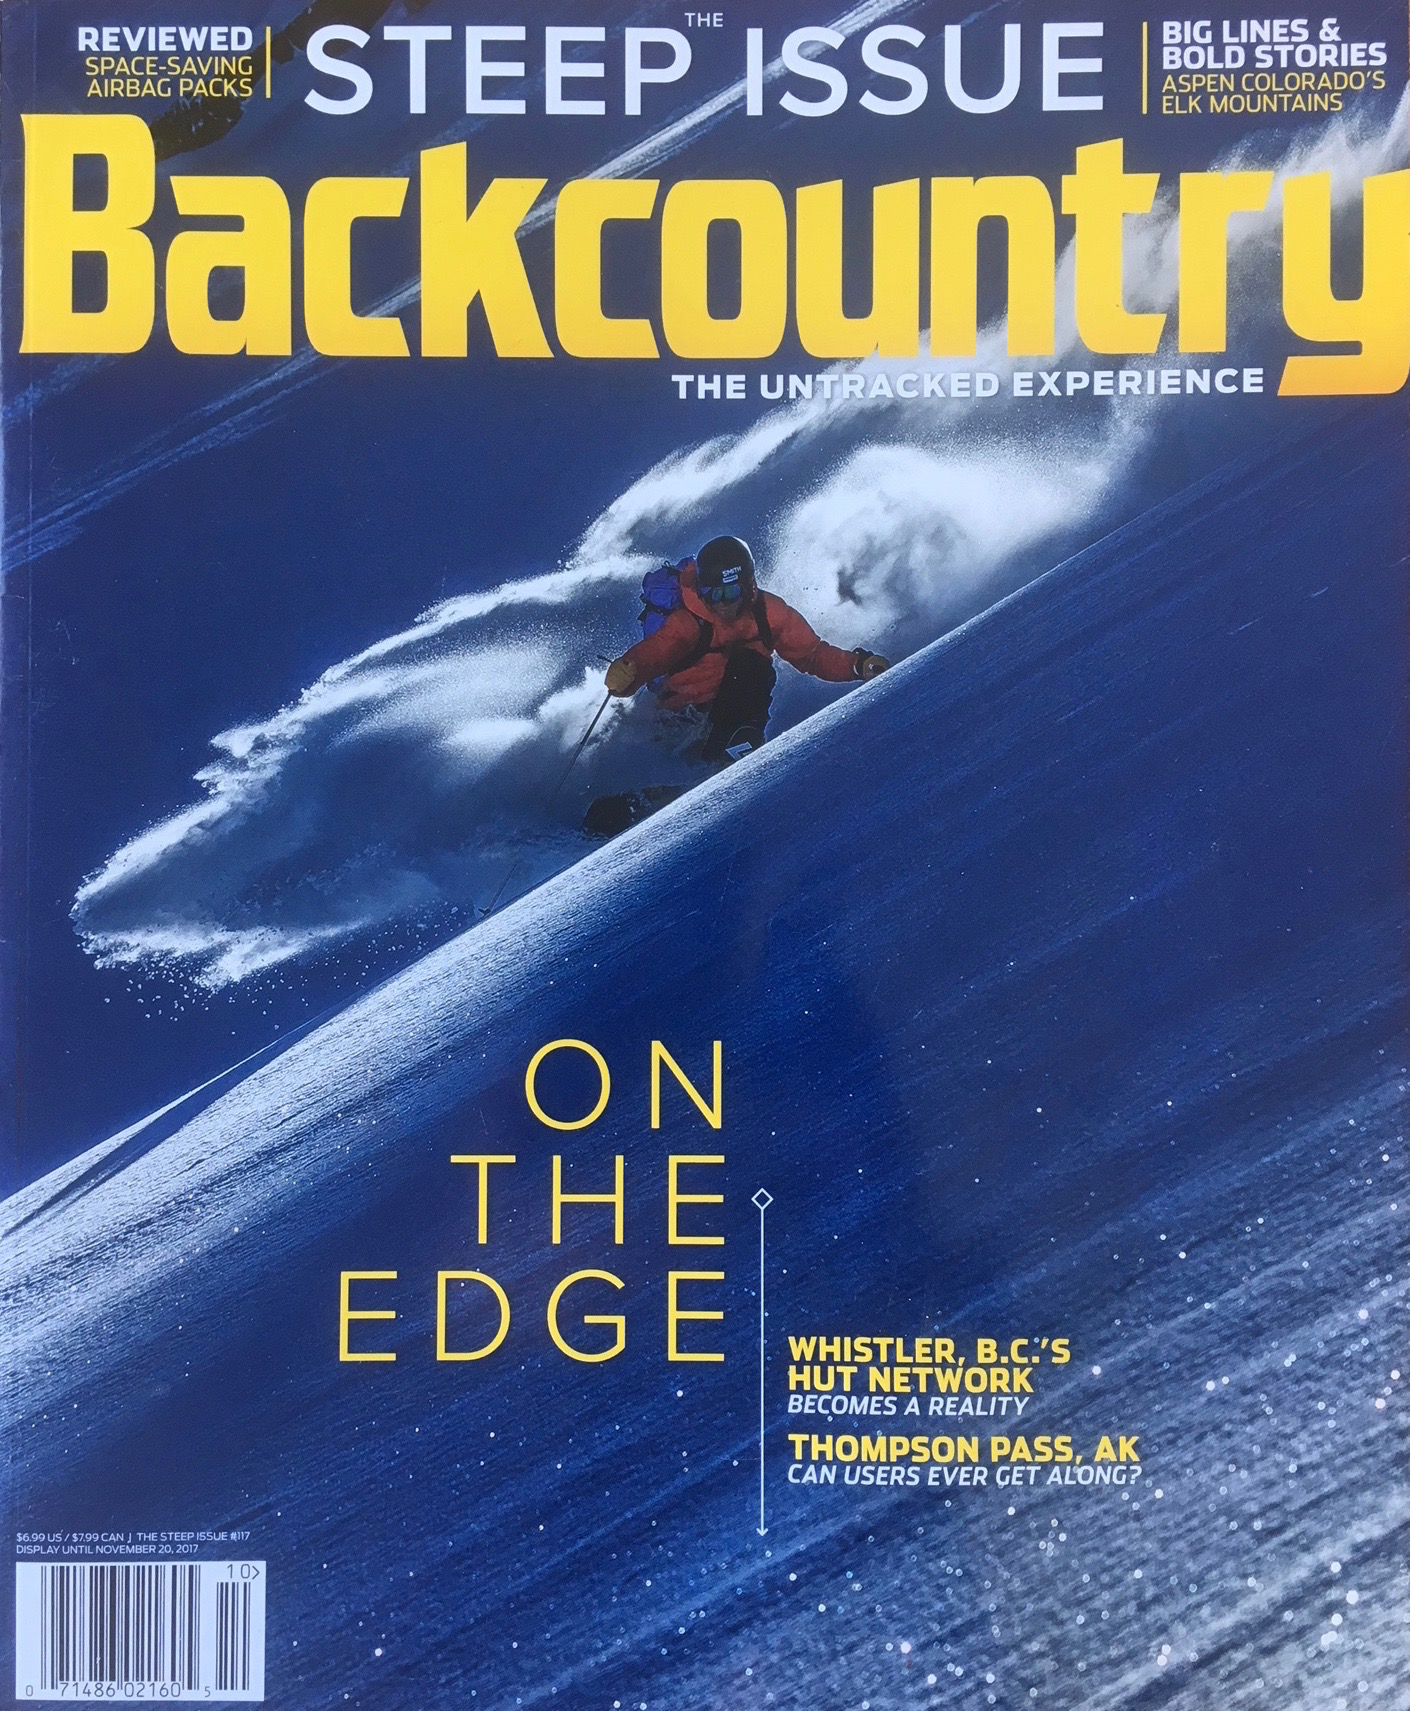 Backcountry Magazine, November 2017   Thompson Pass, Alaska is a legendary mecca for big mountain skiing and riding. It's also a litmus test for a crowded public land resource with diverse user groups who often find their activities in conflict. Public lands managed by different agencies, safety concerns, and critical habitat for wintering wildlife issues round it out. Will the pass show us the way to collaborate, or be a victim of its popularity?